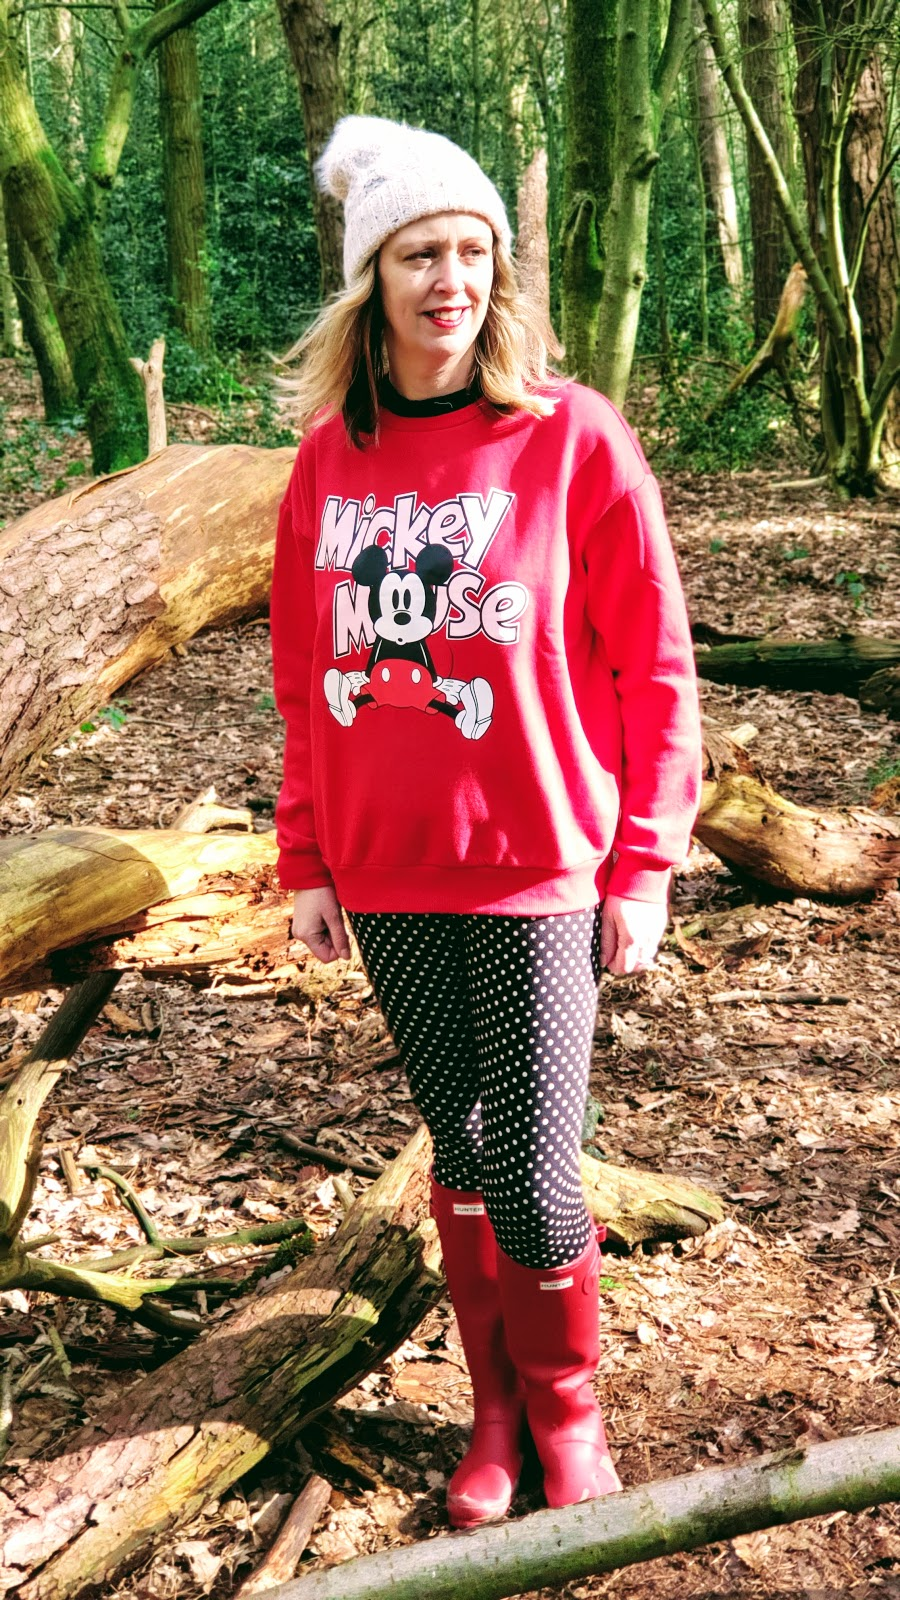 Put Your Mickey Mouse Jumper On And A Feel Good Friday Link Up